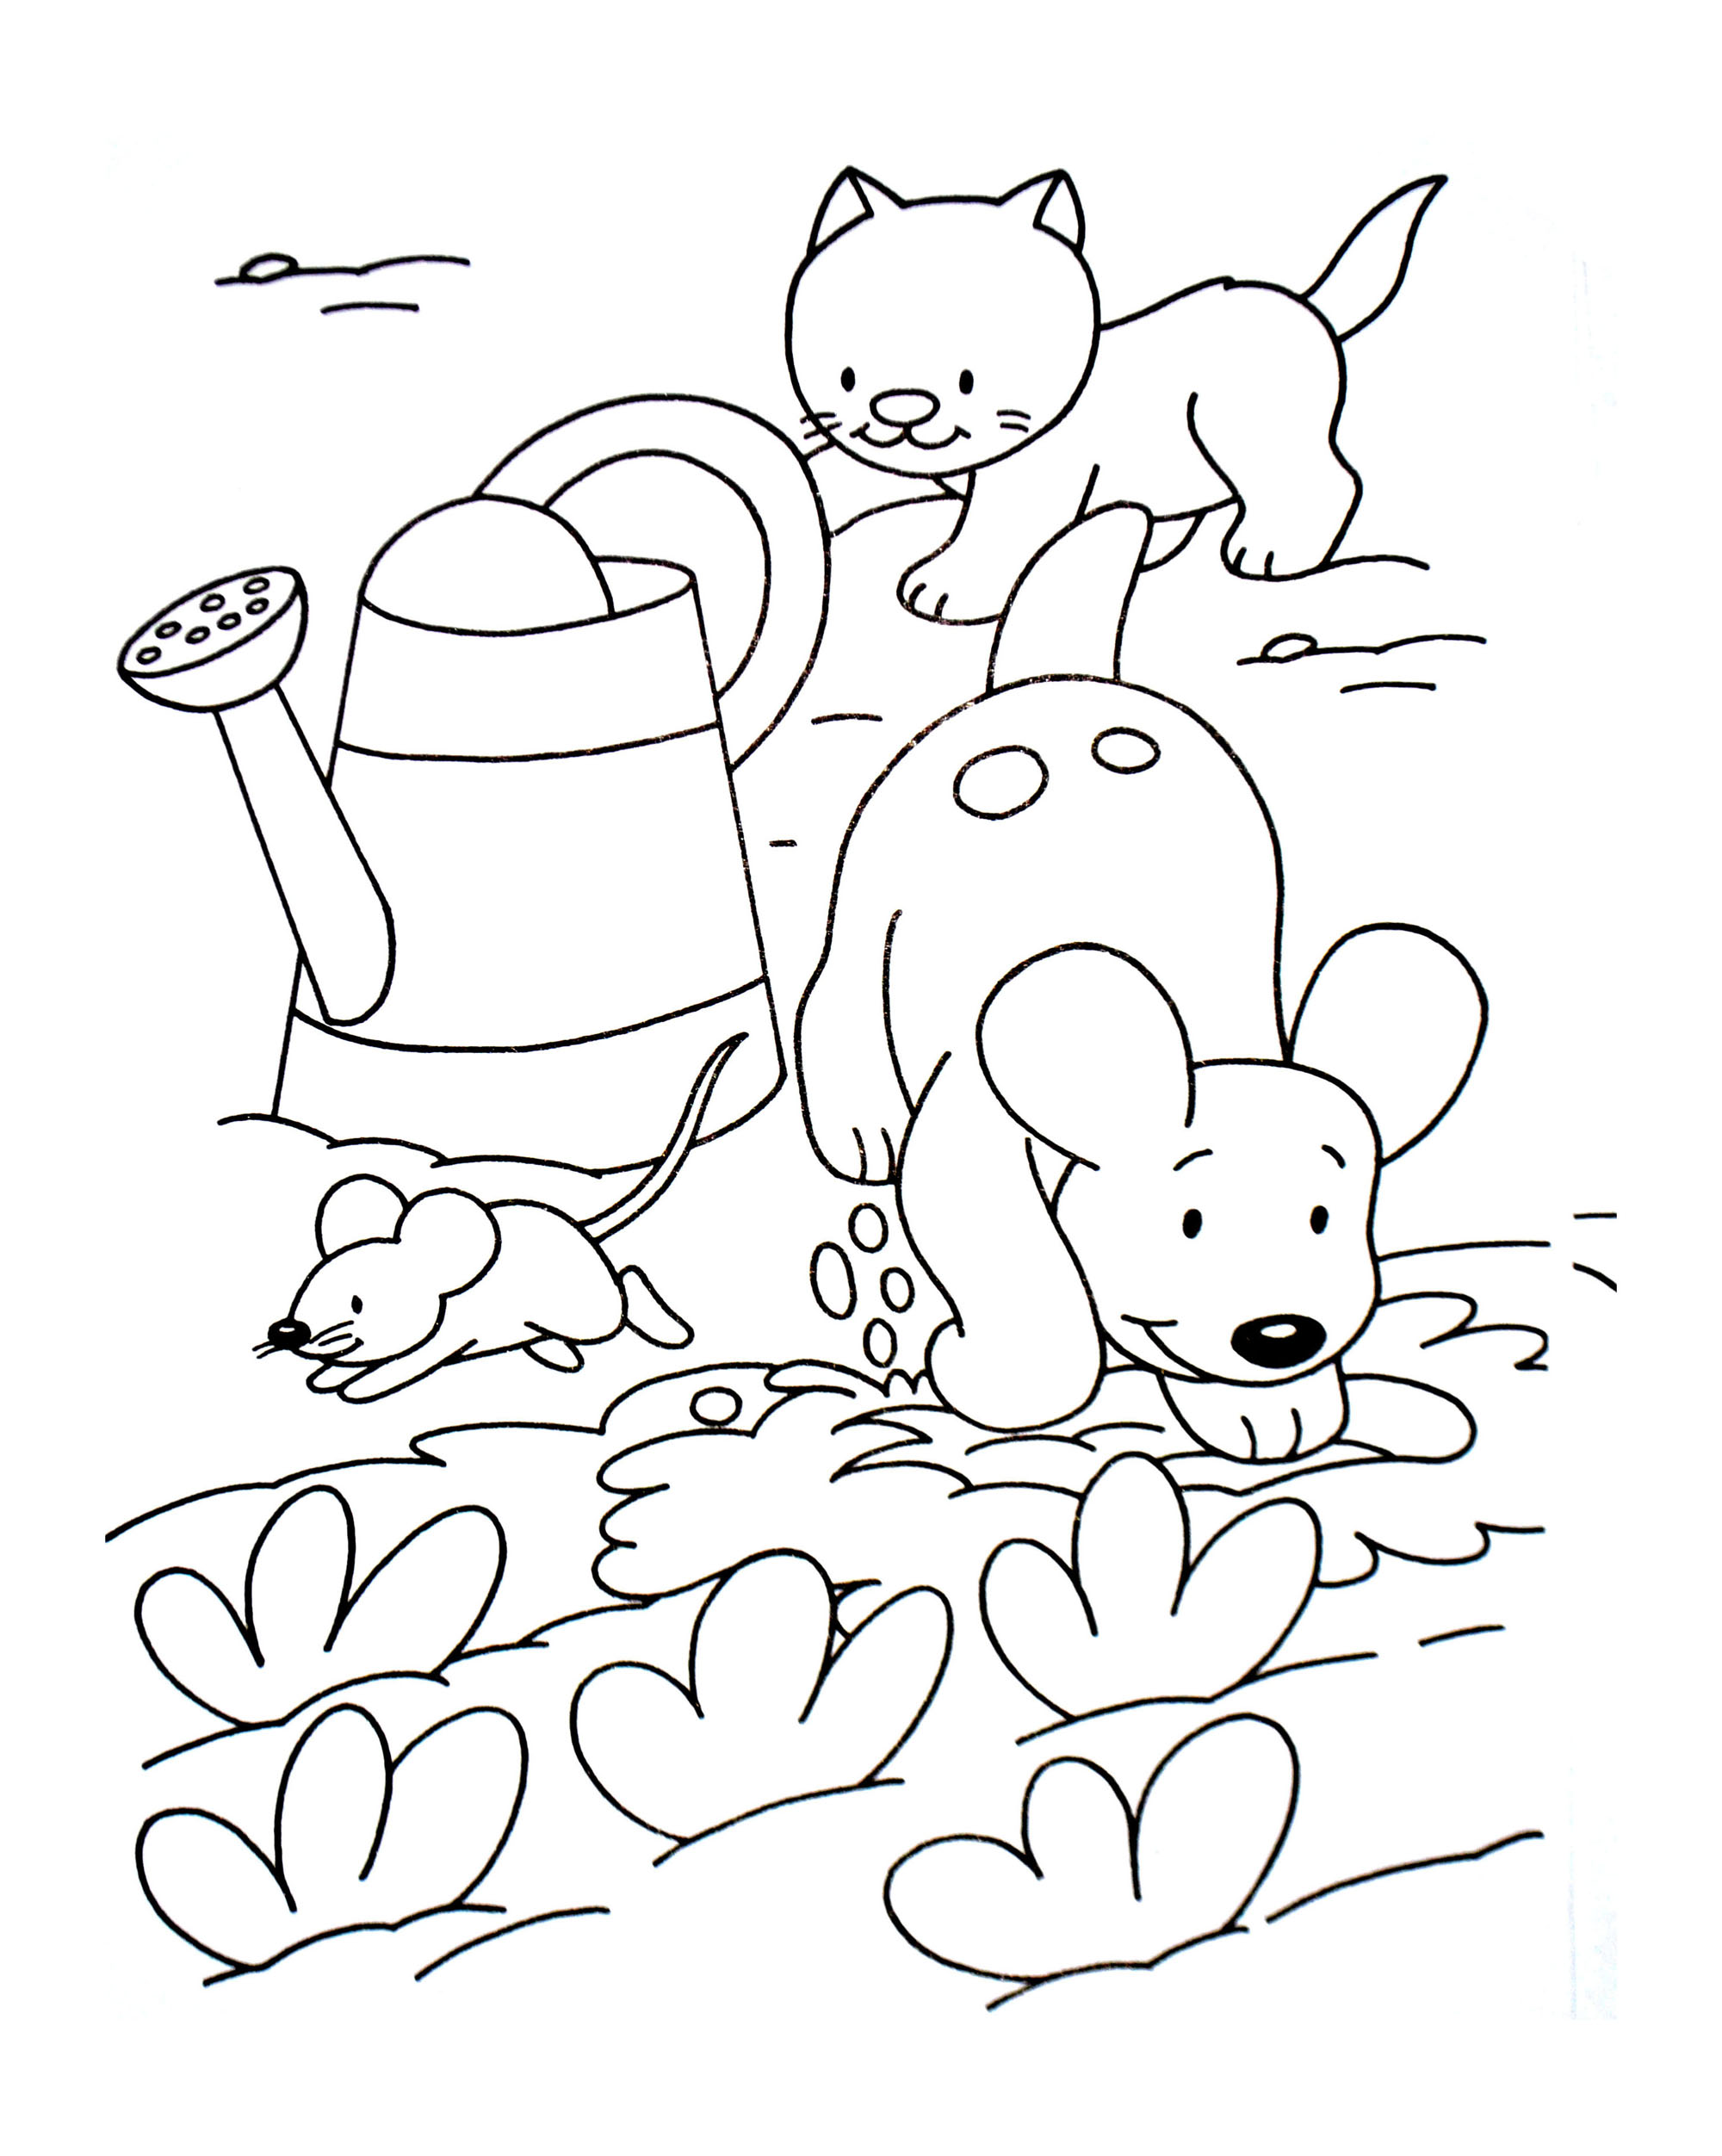 Incredible Farm coloring page to print and color for free